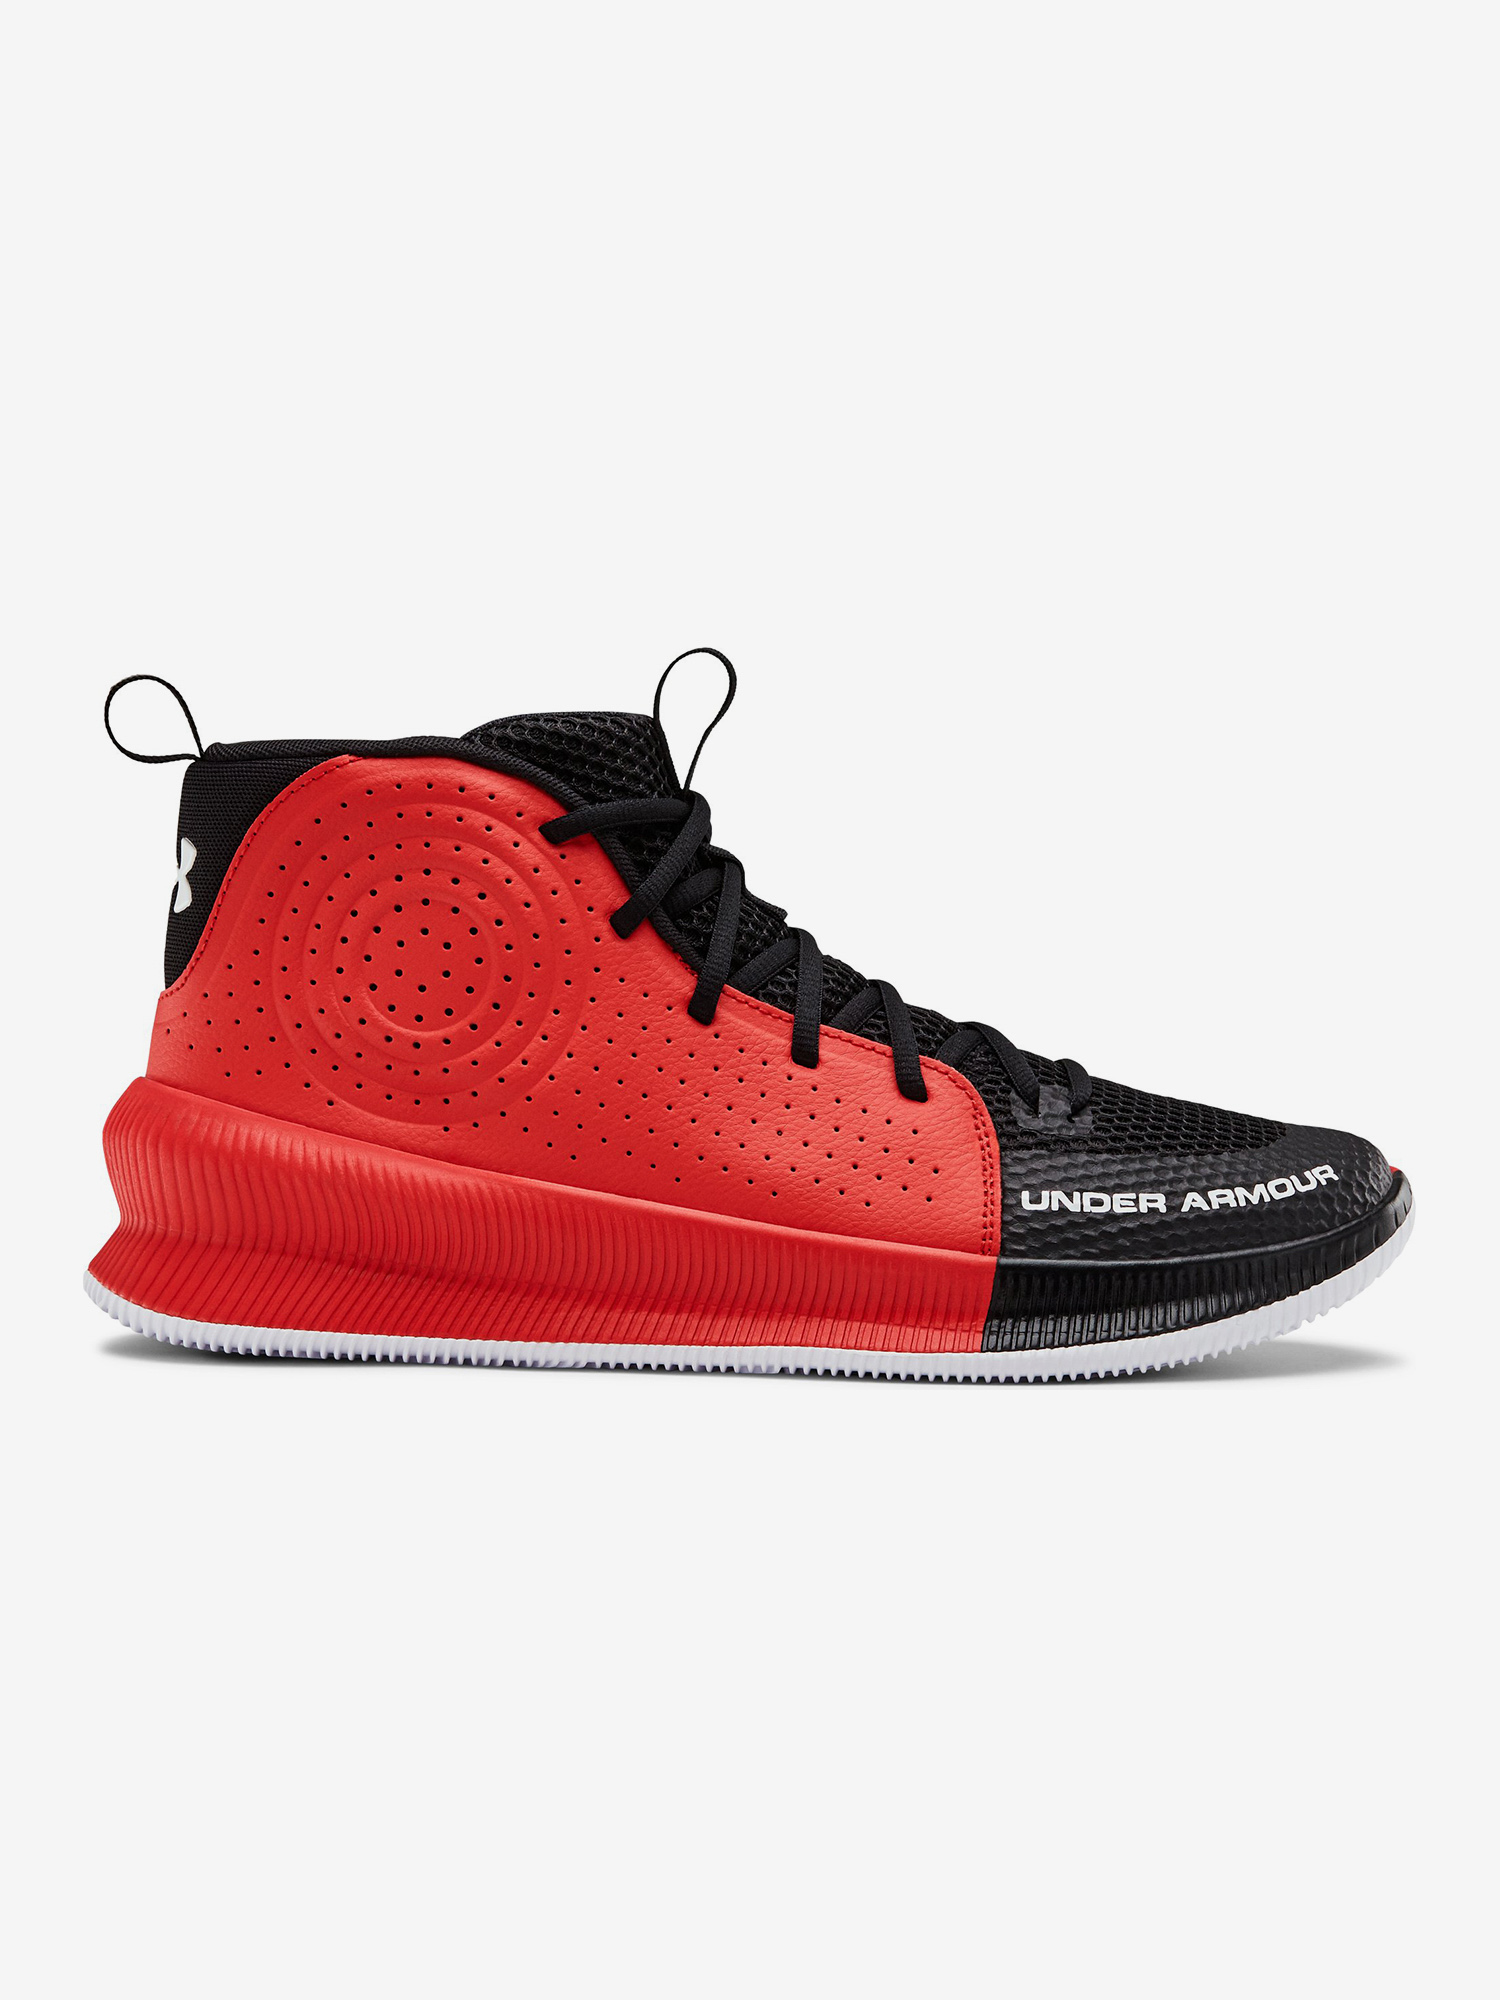 Boty Under Armour Jet-Blk